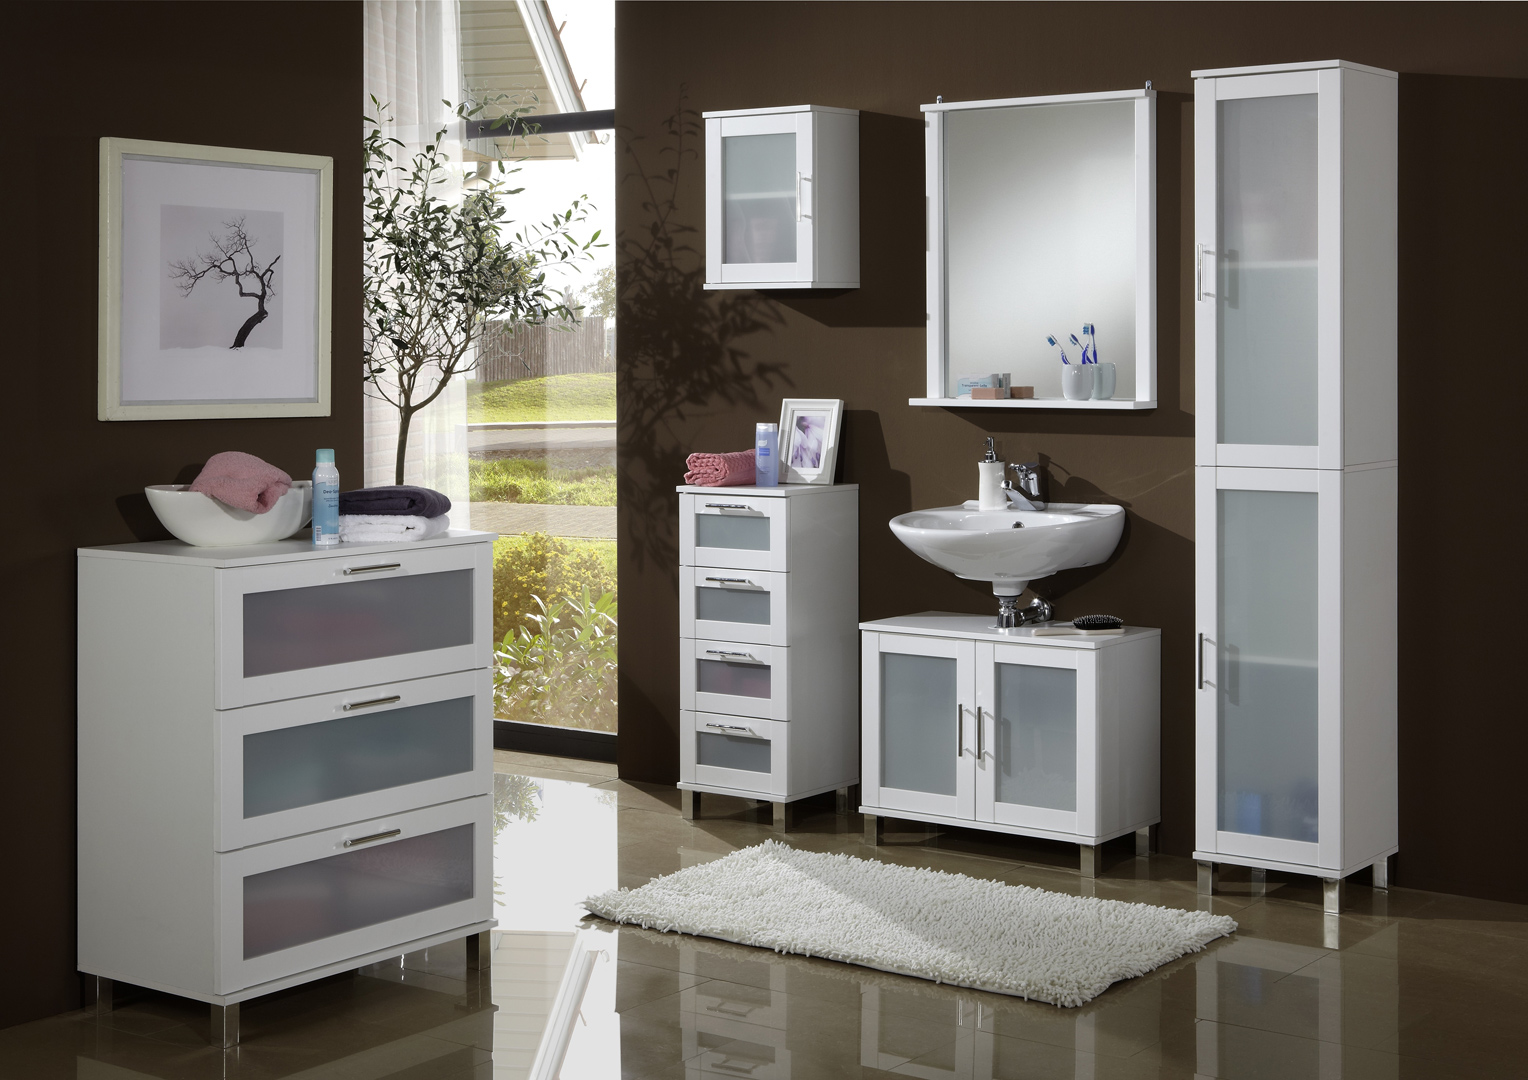 meuble haut de salle de bain contemporain blanc 1 porte campos. Black Bedroom Furniture Sets. Home Design Ideas